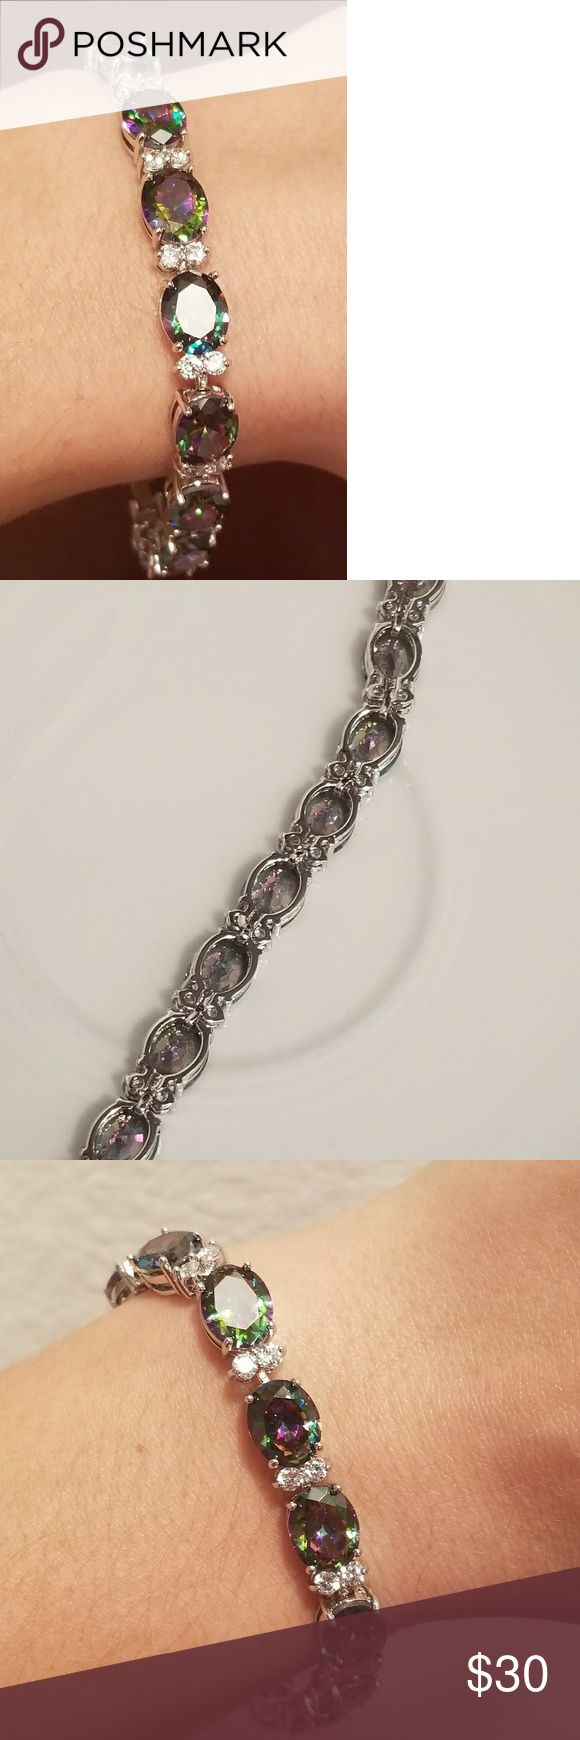 🆕️18K WGF- Mystic Rainbow Topaz Tennis Bracelet JUST IN- BRAND NEW!!  Stunning Mystic (Purple) Rainbow Topaz  Tennis Bracelet in 18K White Gold Filled 😍😍 Size: 18.5 cm Jewelry Bracelets